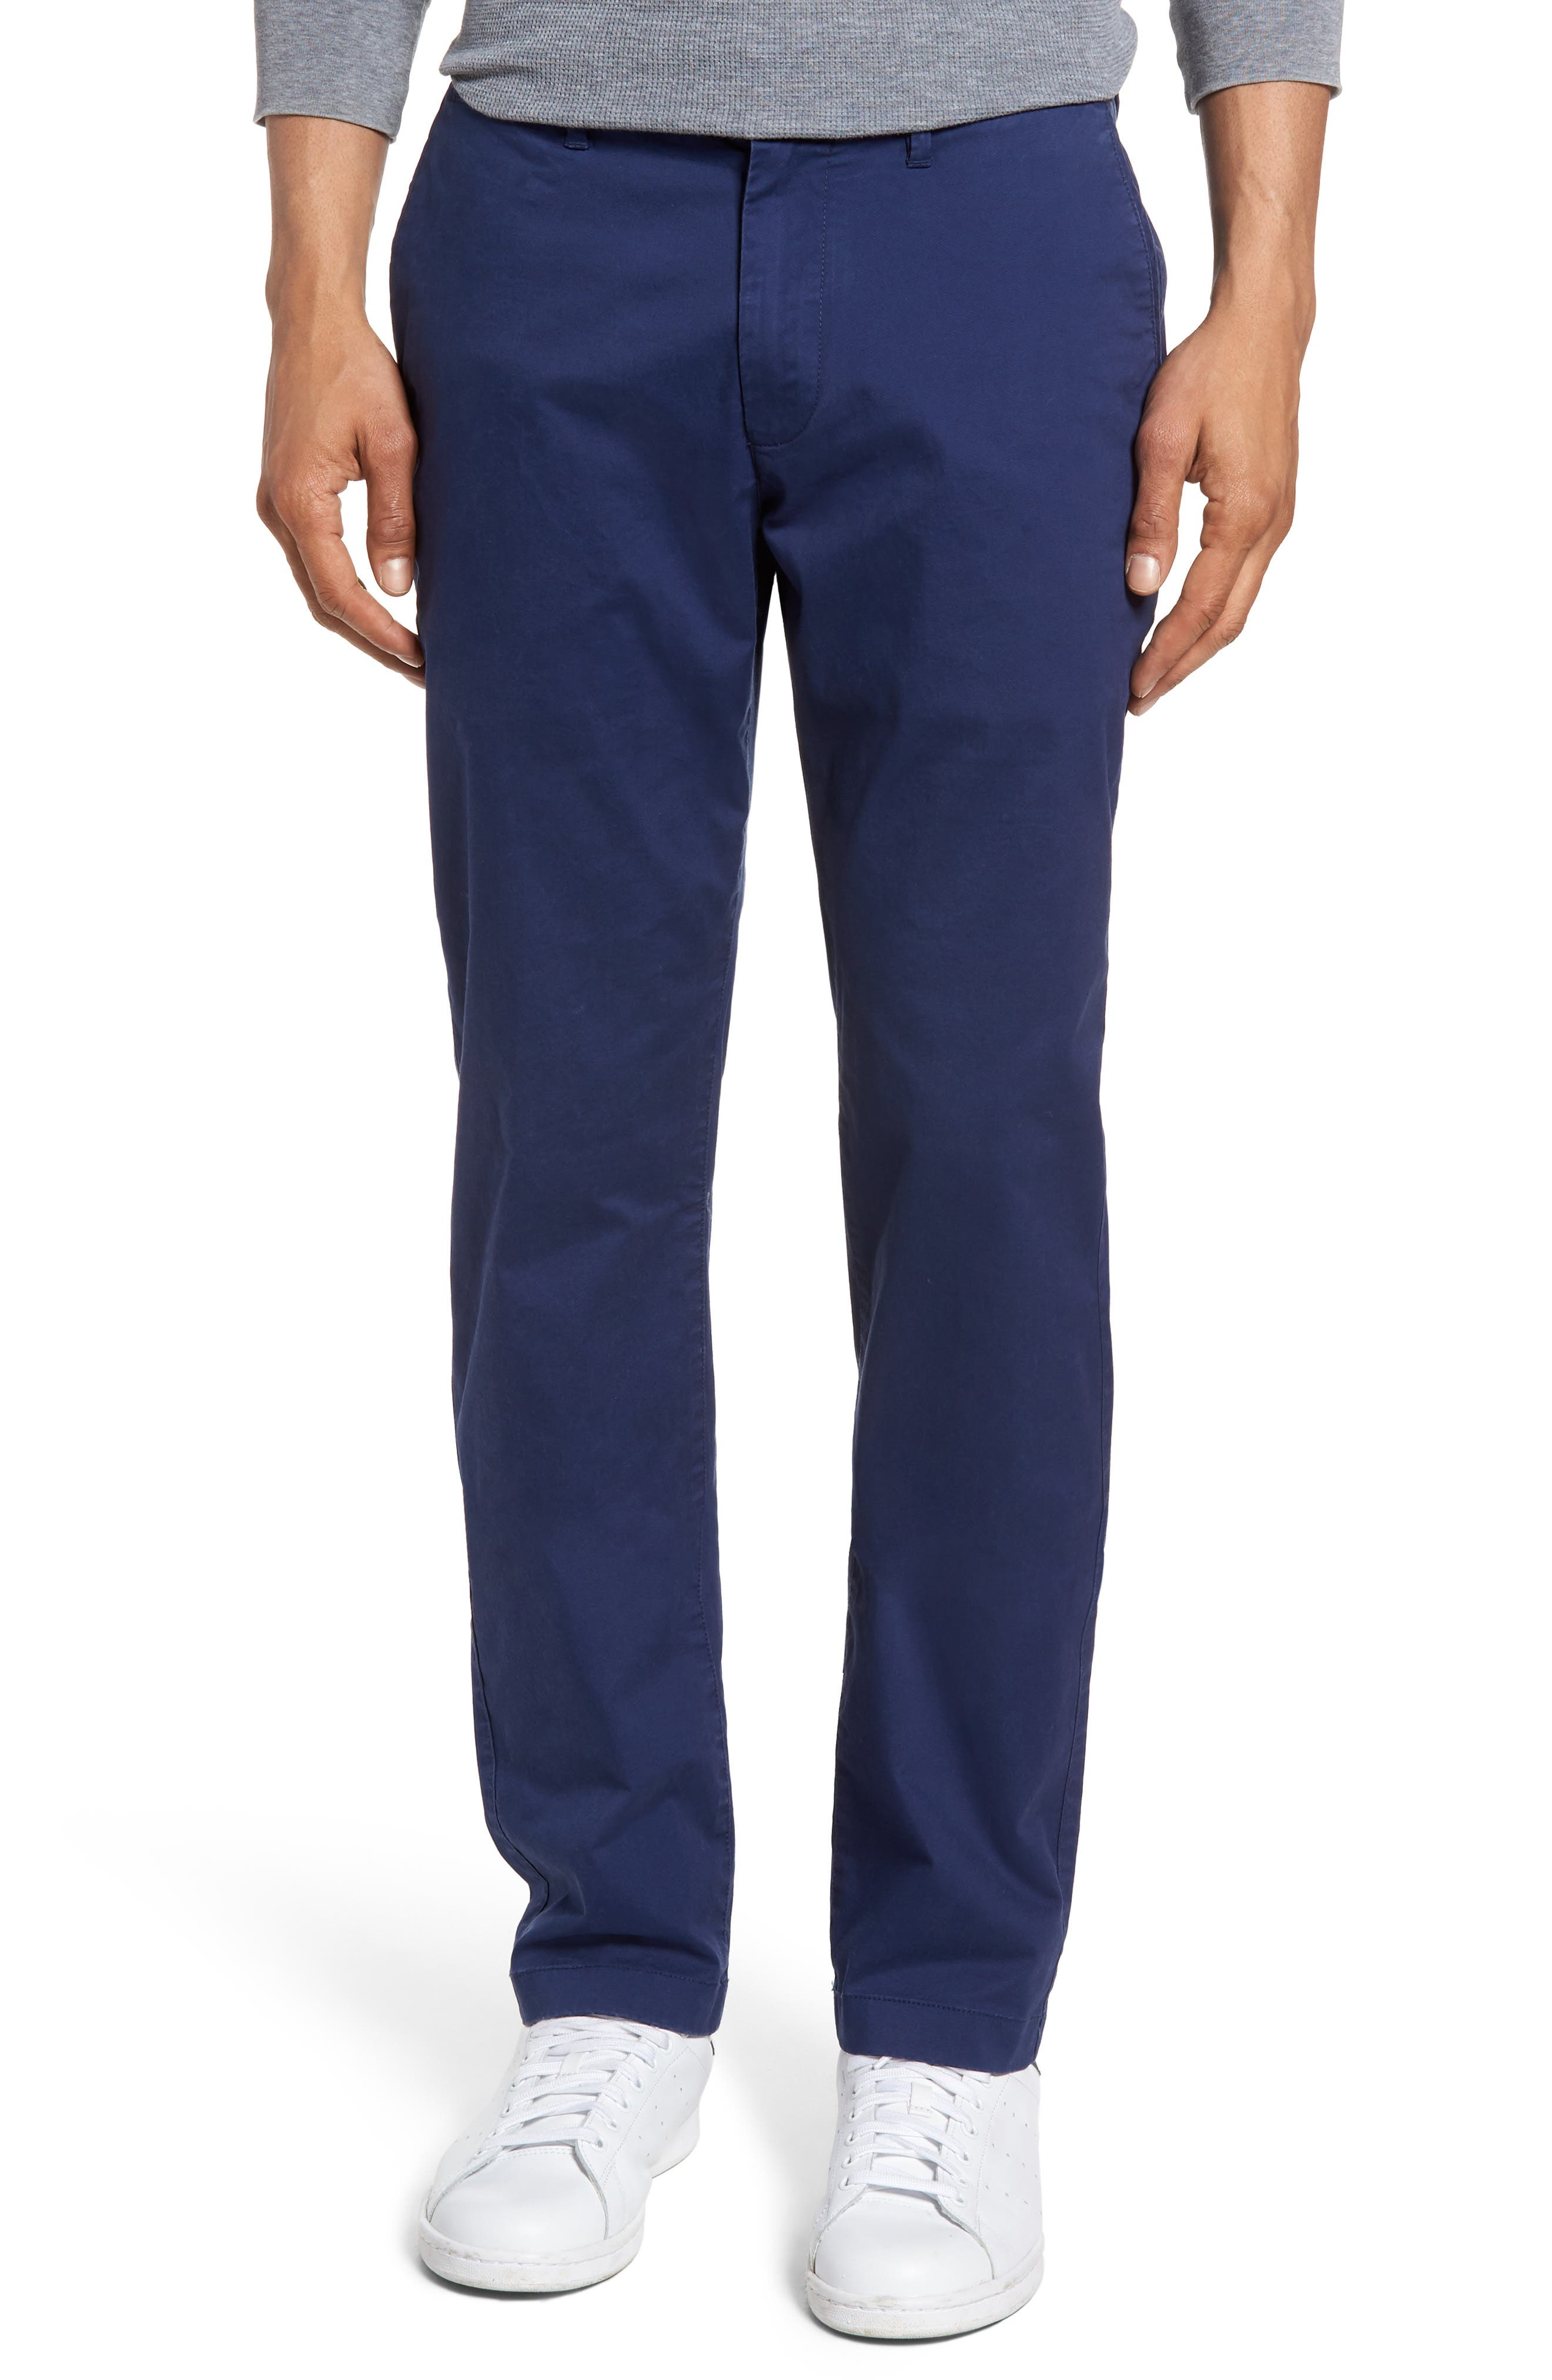 Bonobos Lightweight Slim Fit Stretch Chinos